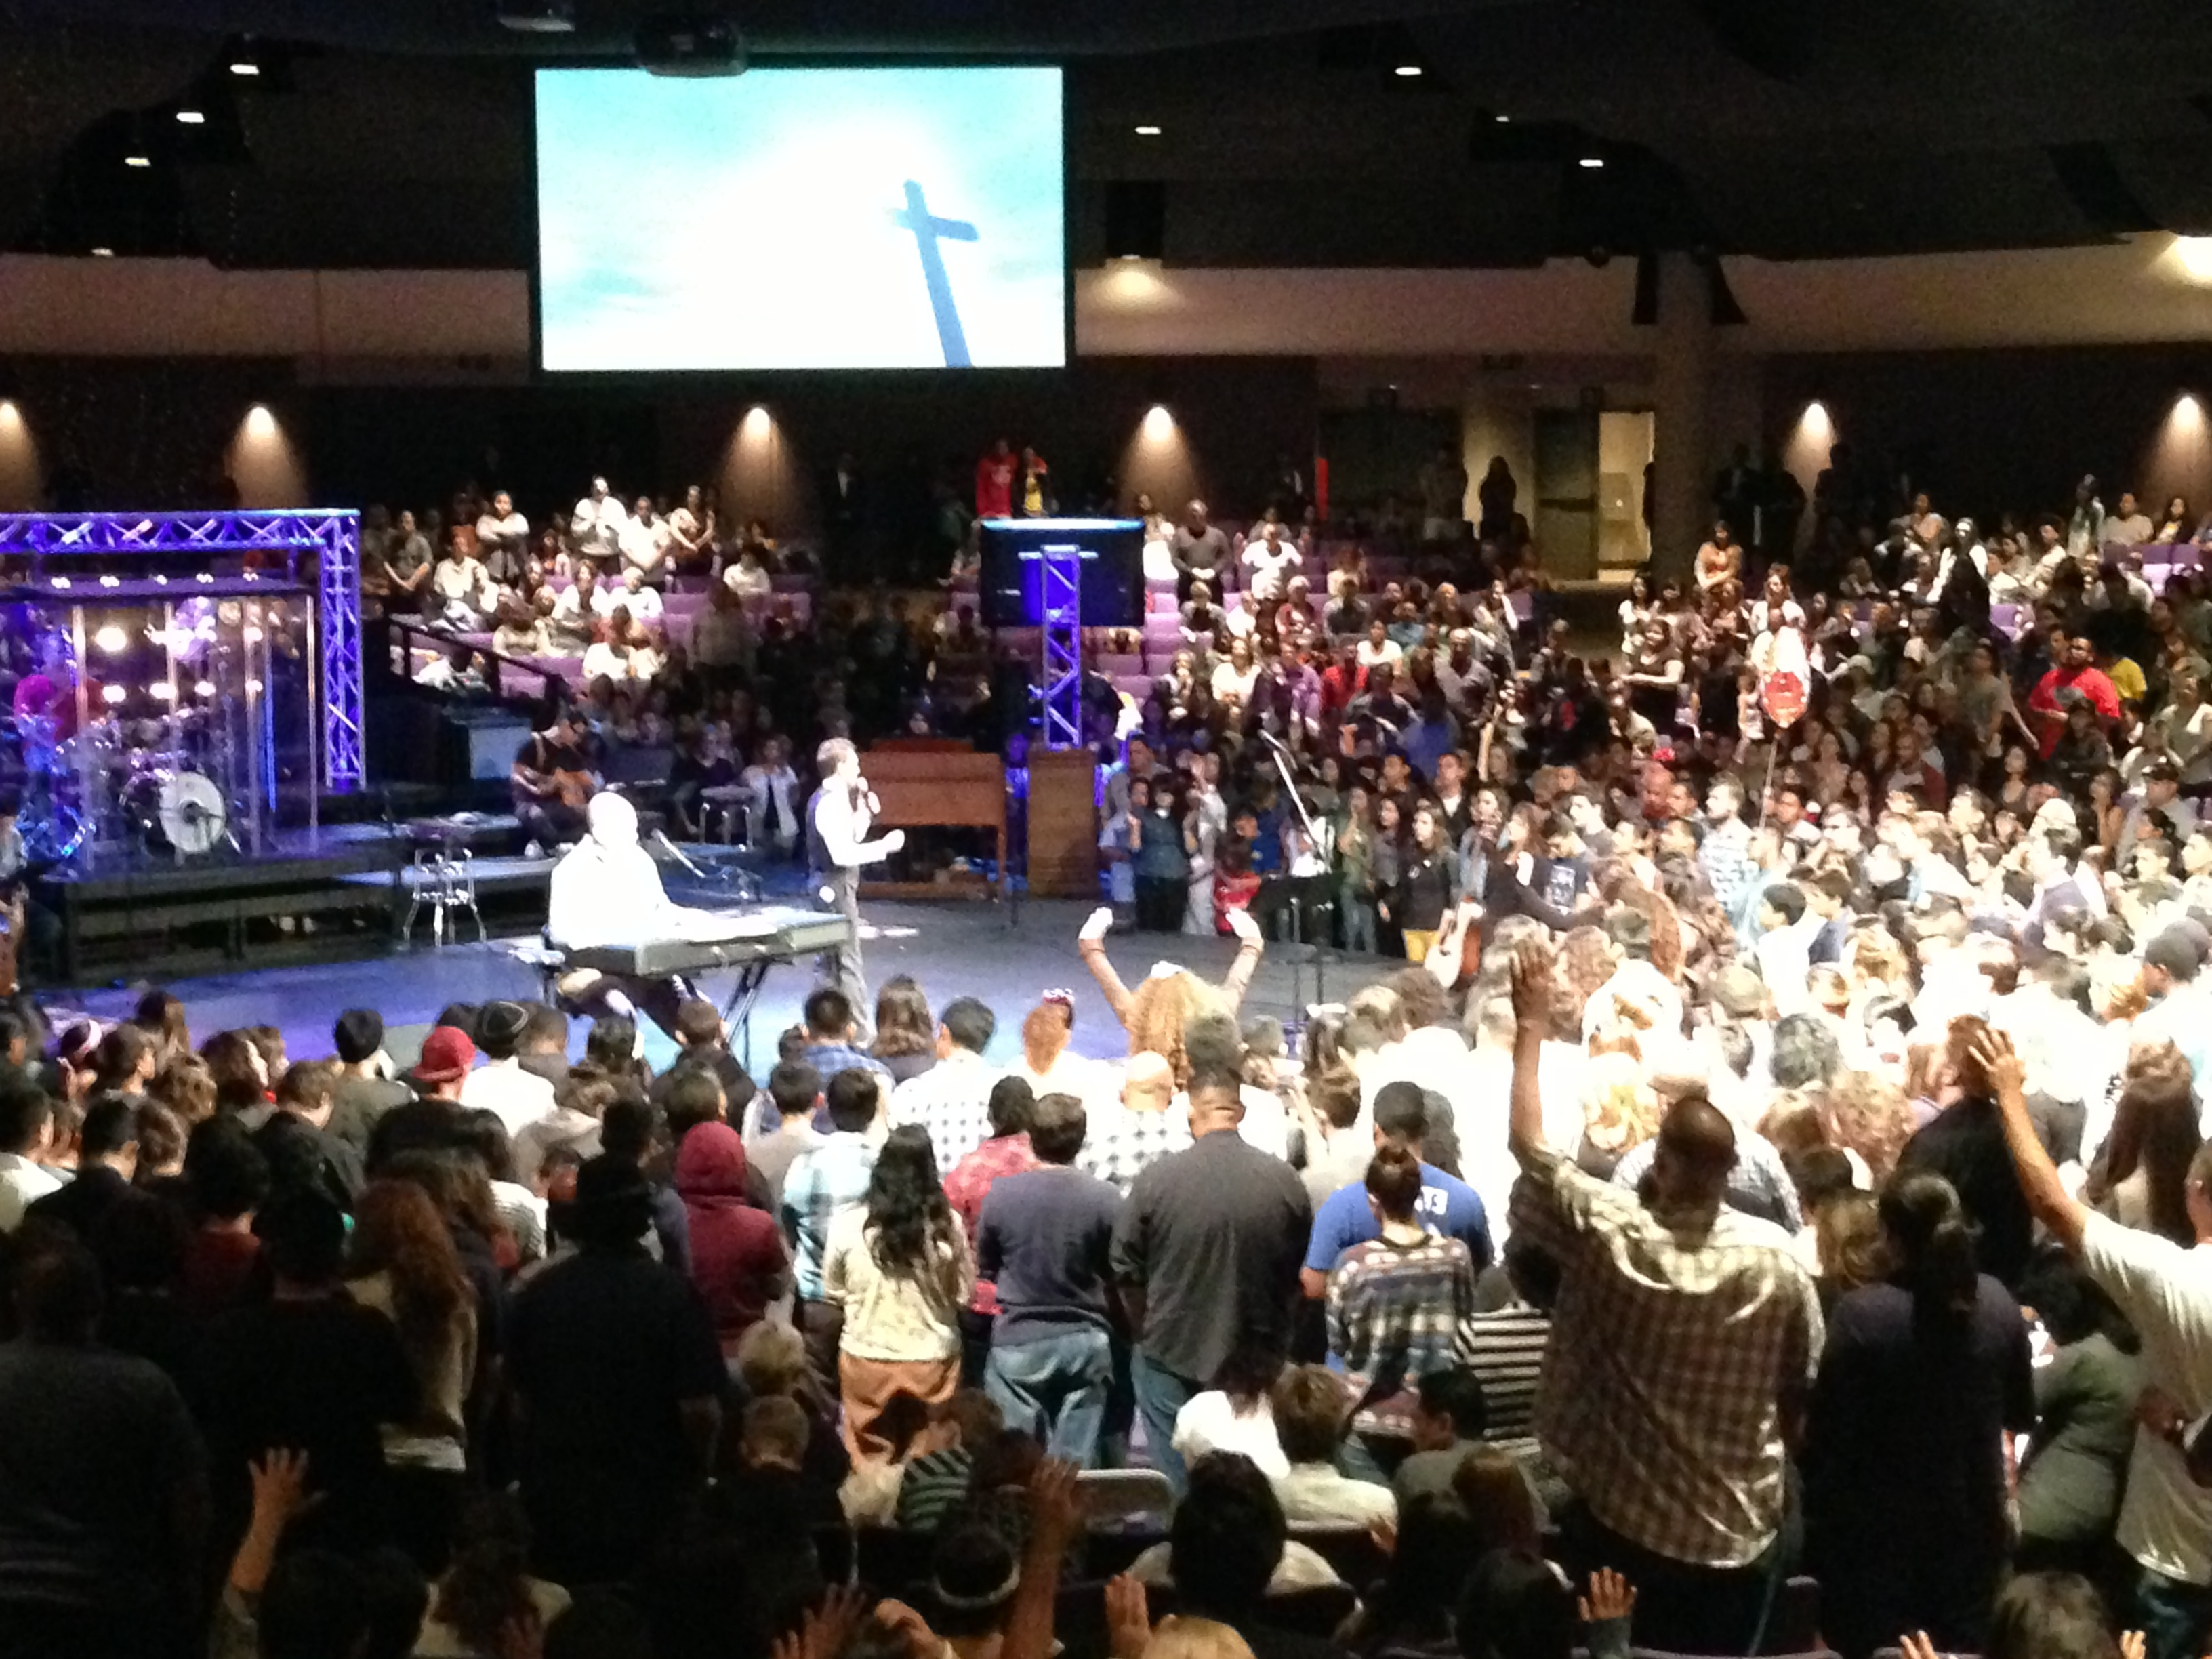 Over 300 turn to Christ in Anaheim, California